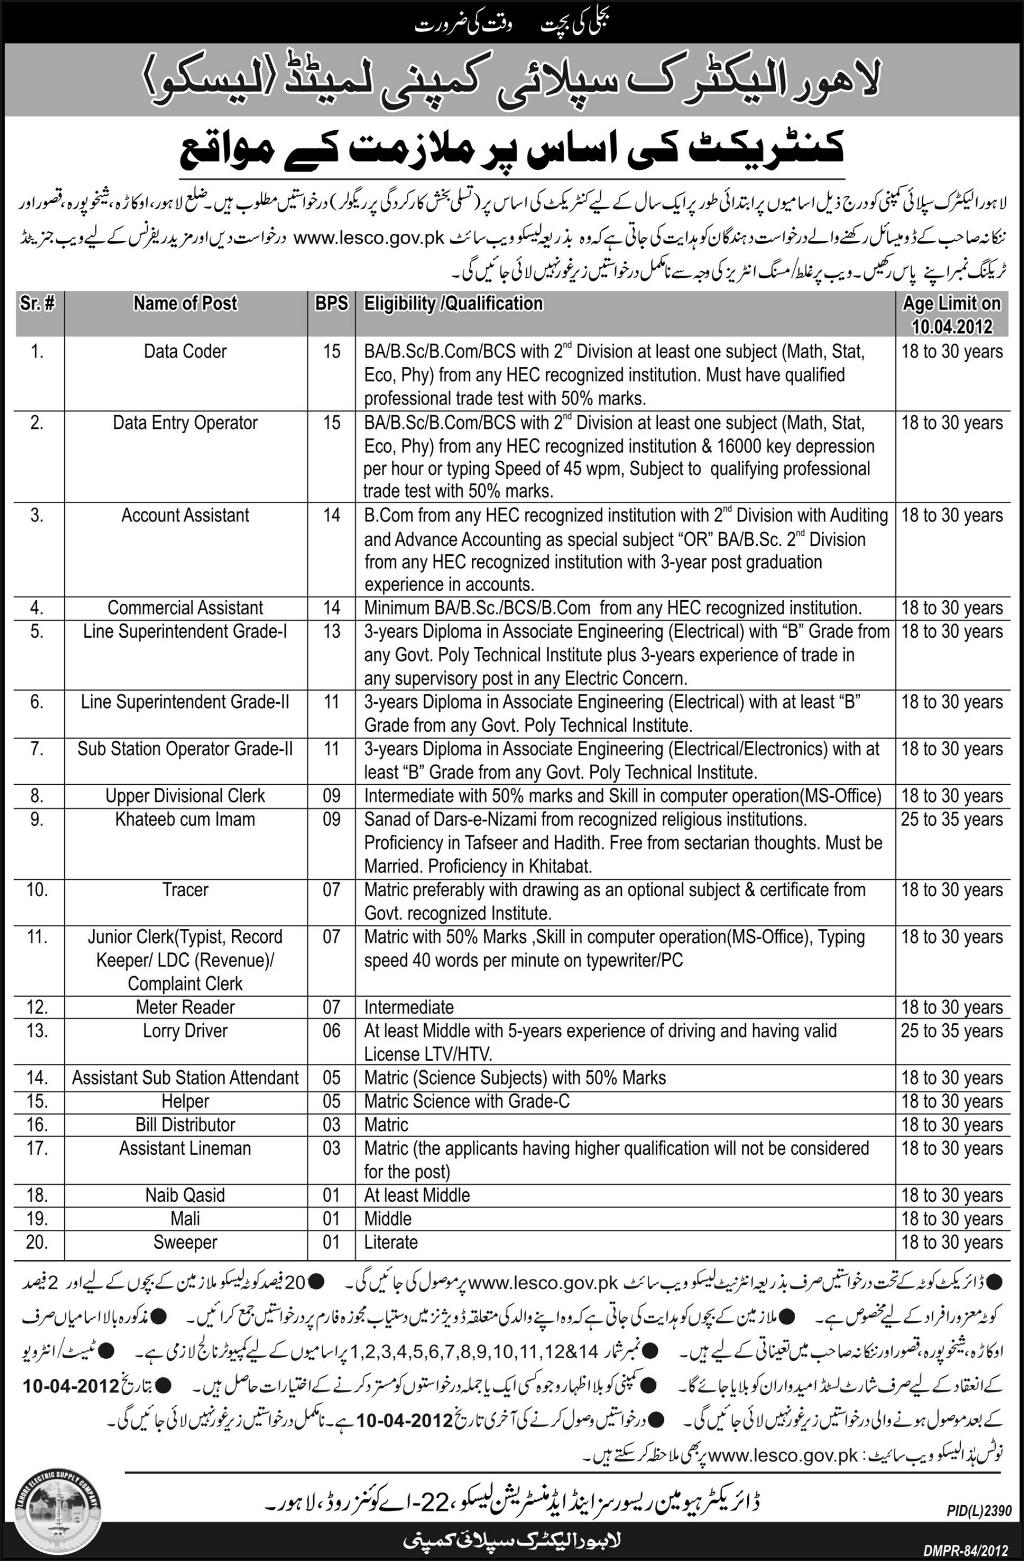 LESCO (Govt) Jobs